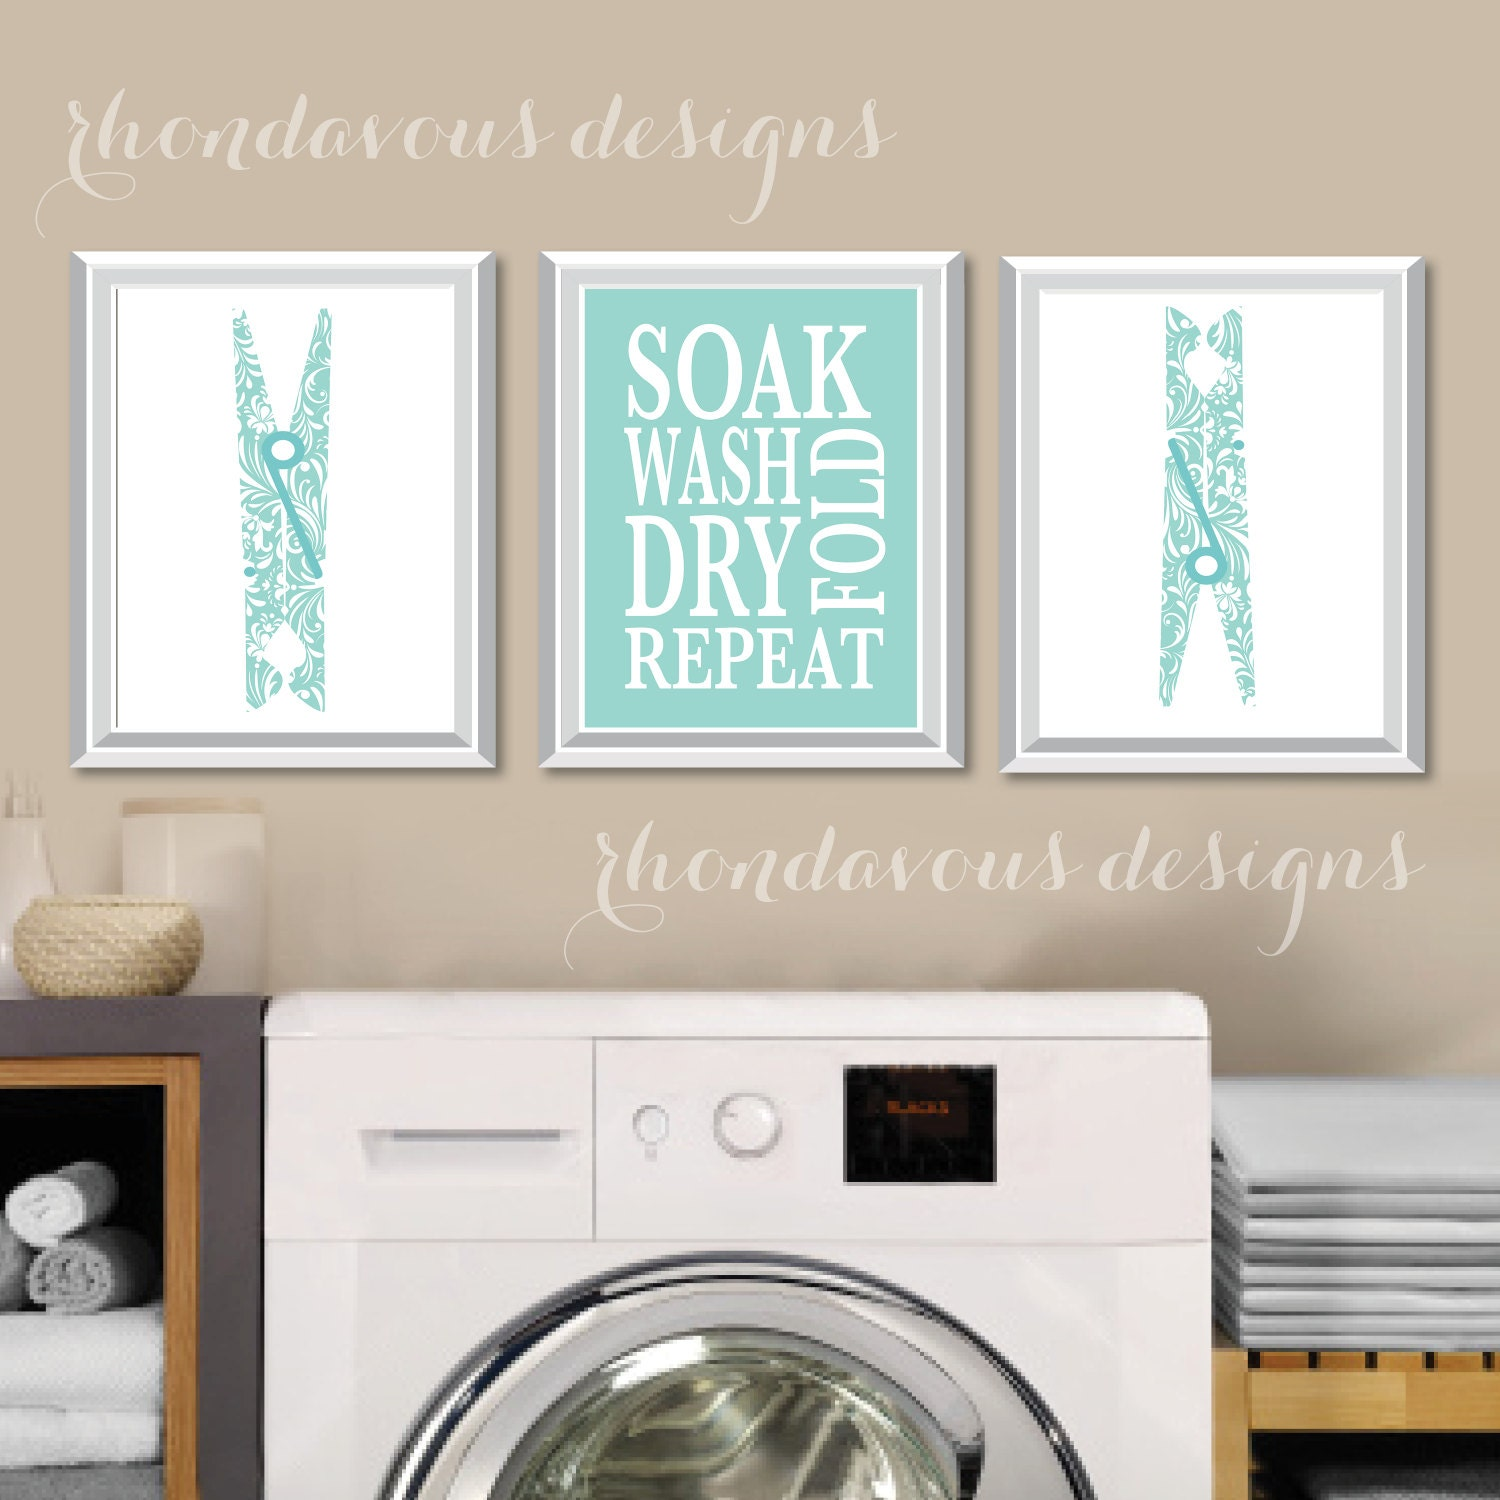 Laundry Room Art Print - Laundry Room Sign - Laundry Room Decorations - Laundry  Room Decor - Laundry Room Prints - Wash Dry Fold - NS-714